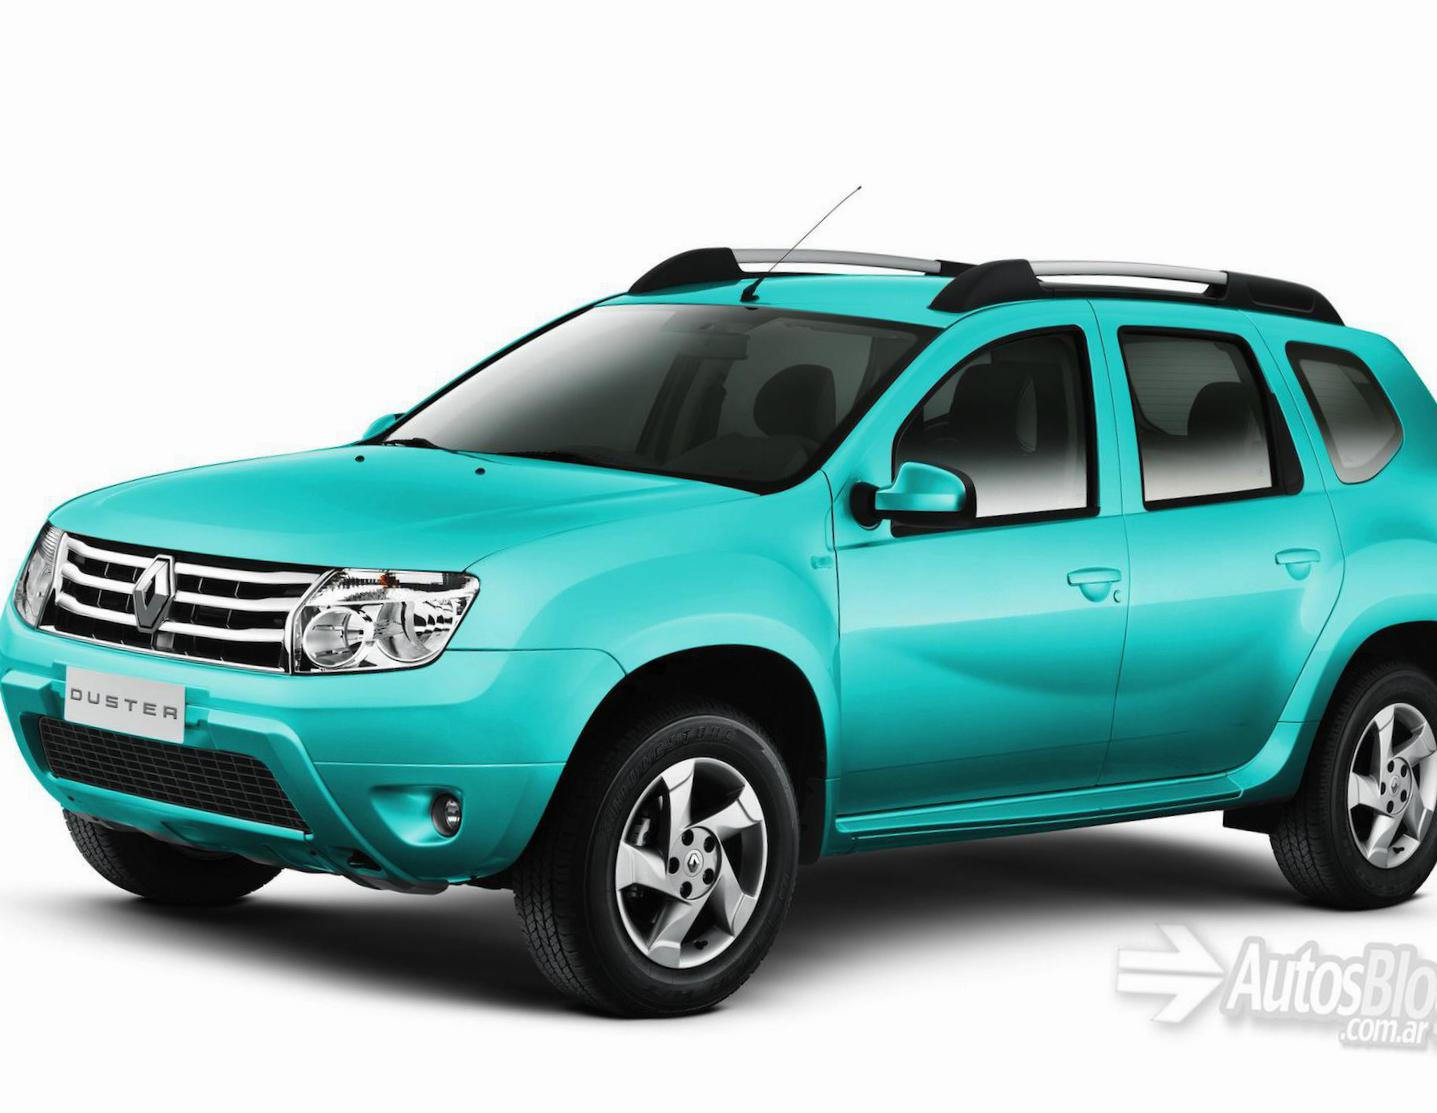 Renault Duster how mach 2010